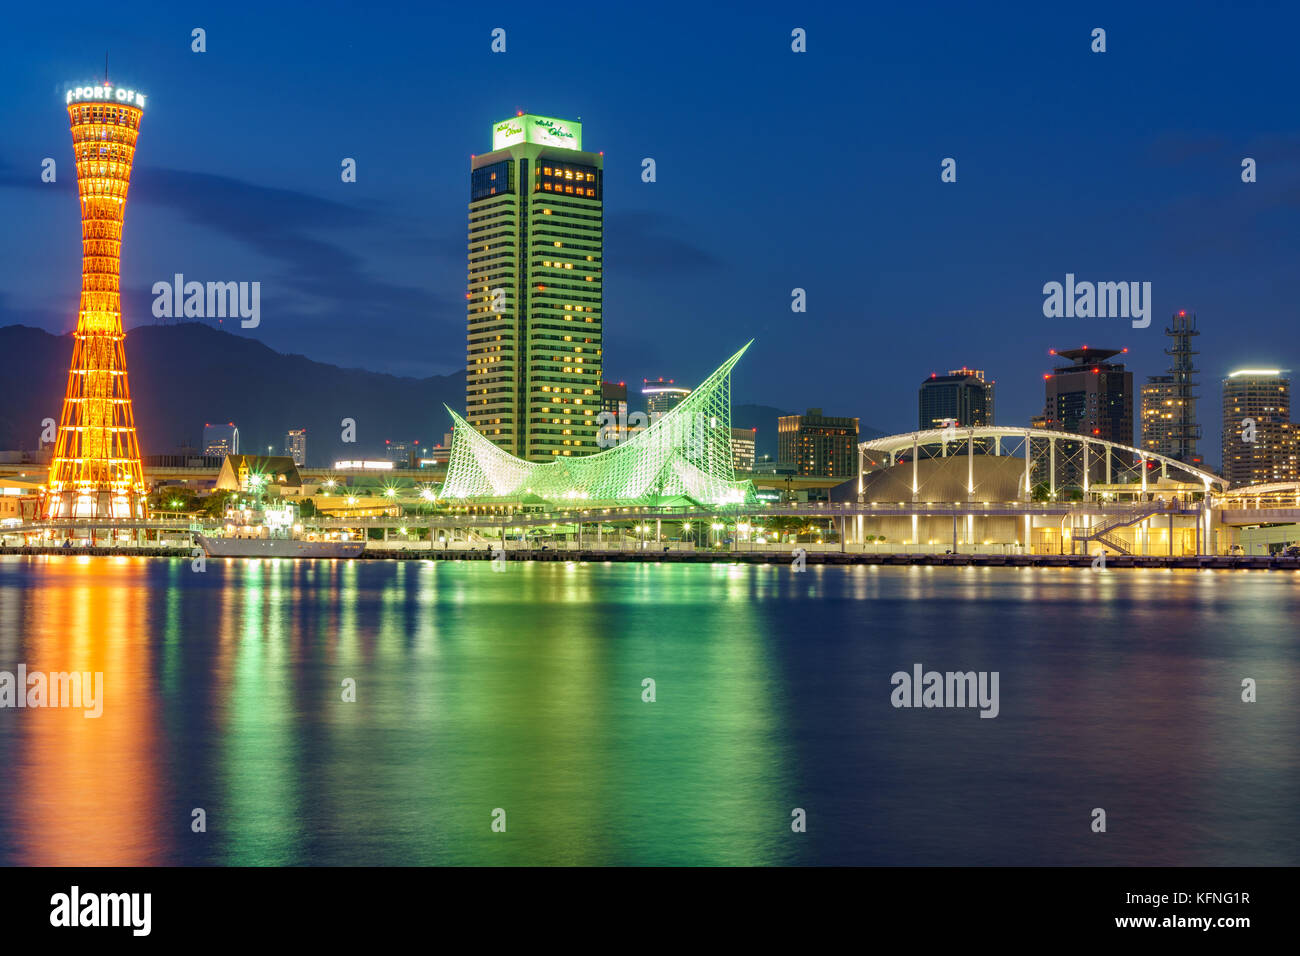 KOBE, JAPAN - June 3, 2015: Kobe tower at Port of Kobe in Kobe, Japan. - Stock Image